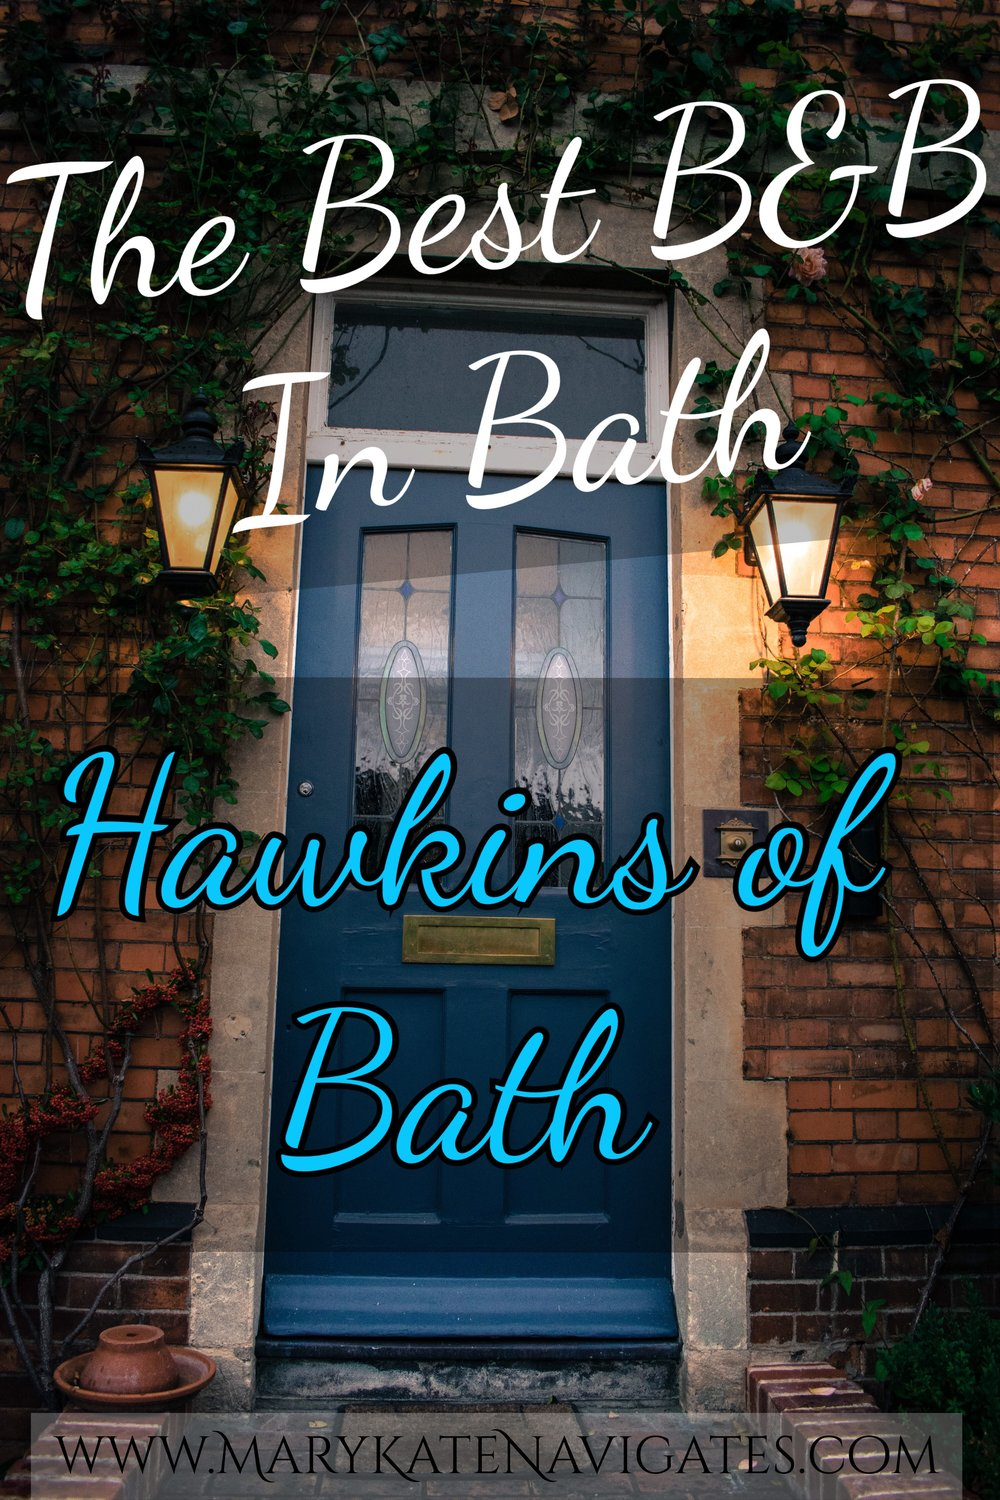 The Best B&B in Bath - Hawkins of Bath